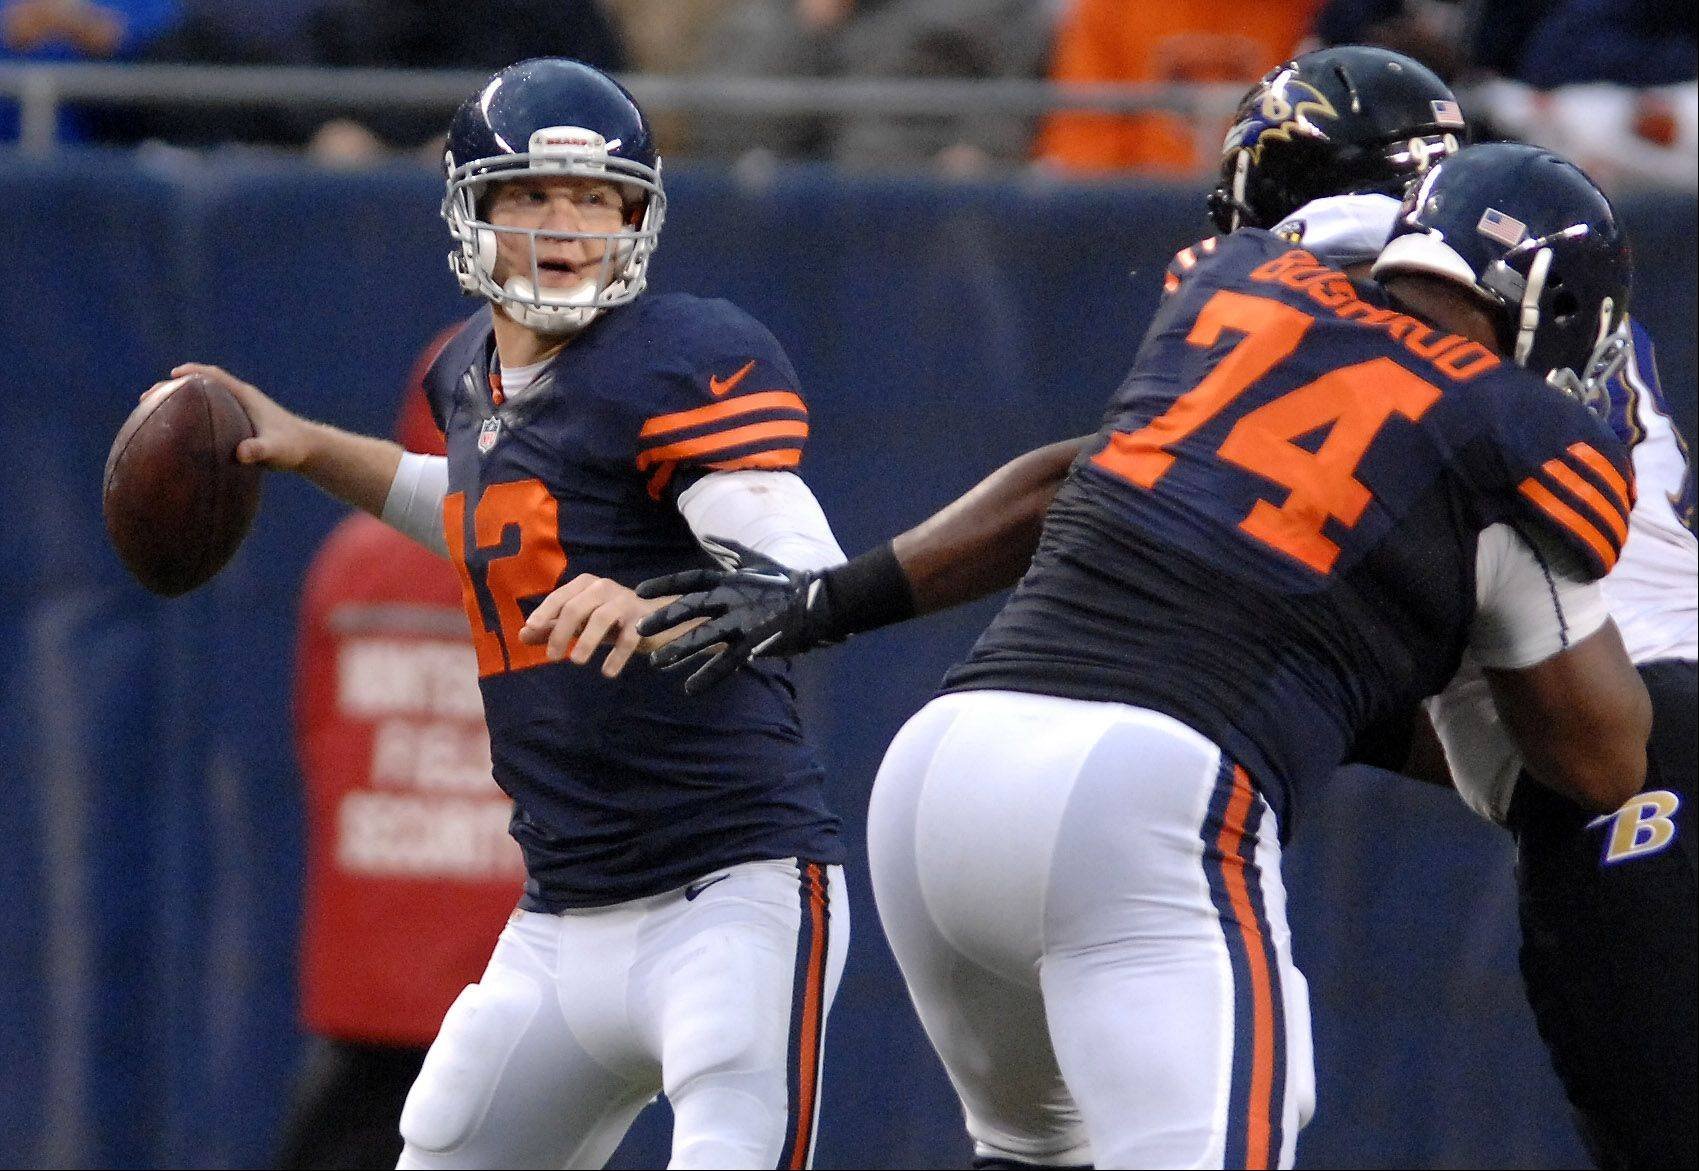 Bears quarterback Josh McCown, who has not thrown an interception this year, understands his role with the team, which is a big help to coach Marc Trestman.